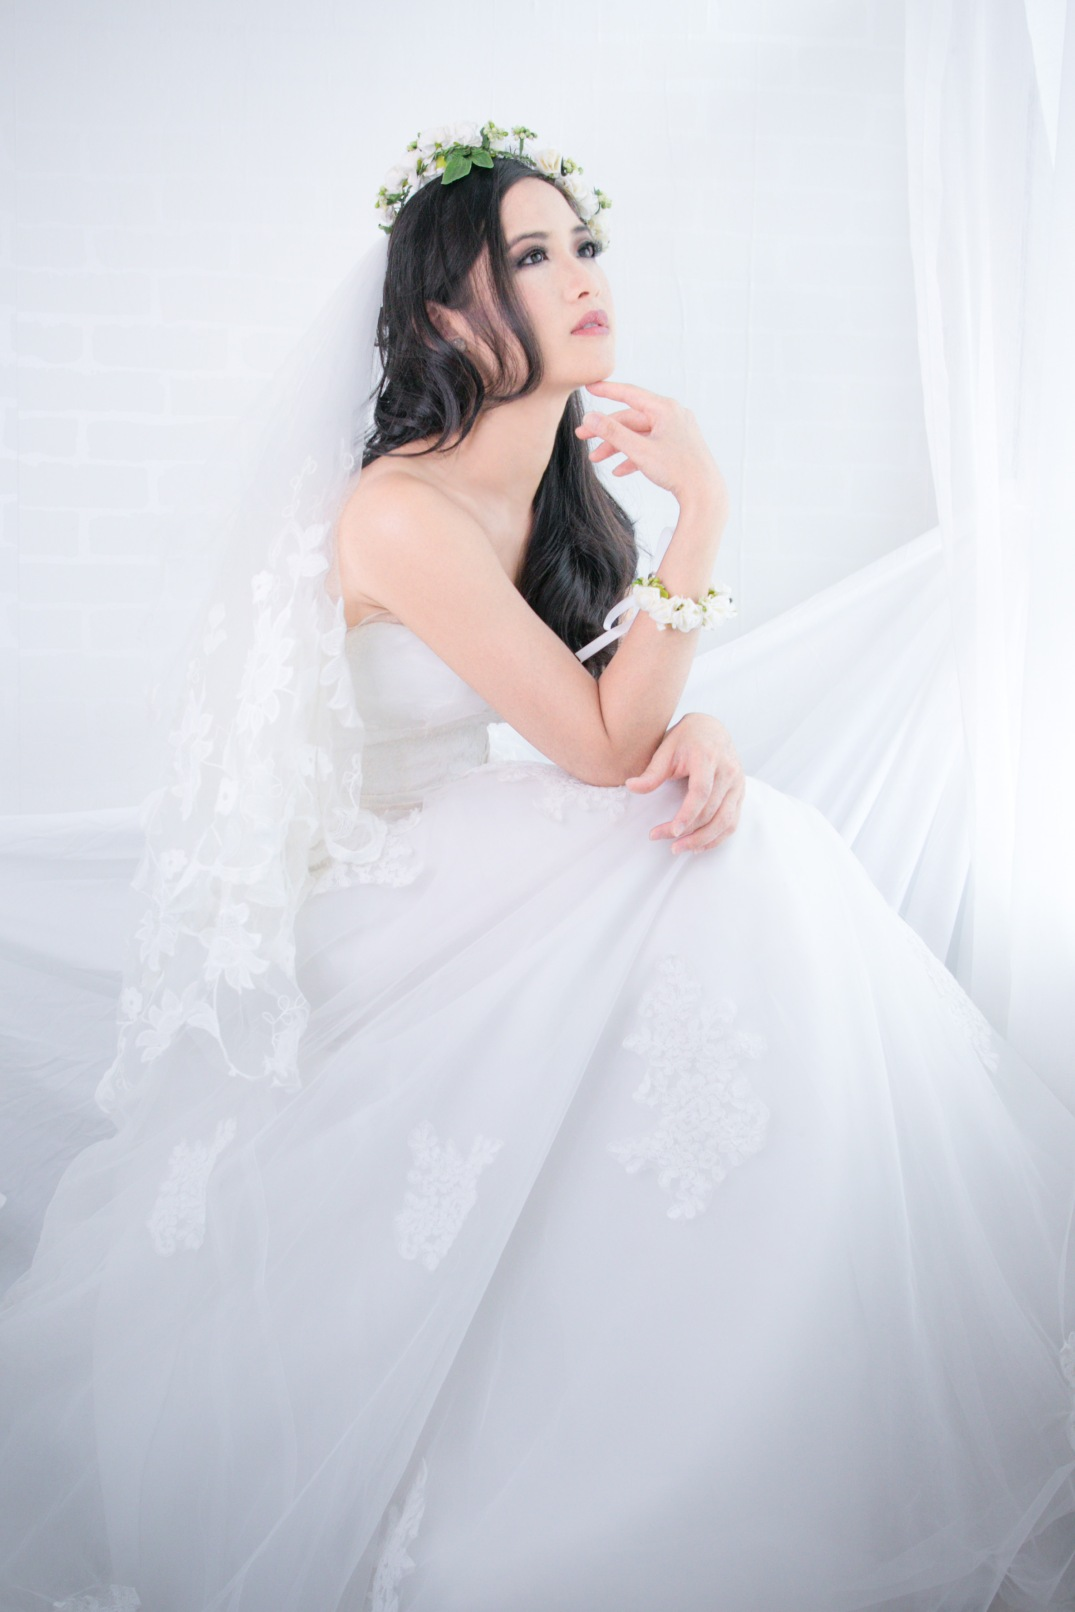 wedding boudoir photography HK by paulstylist-27